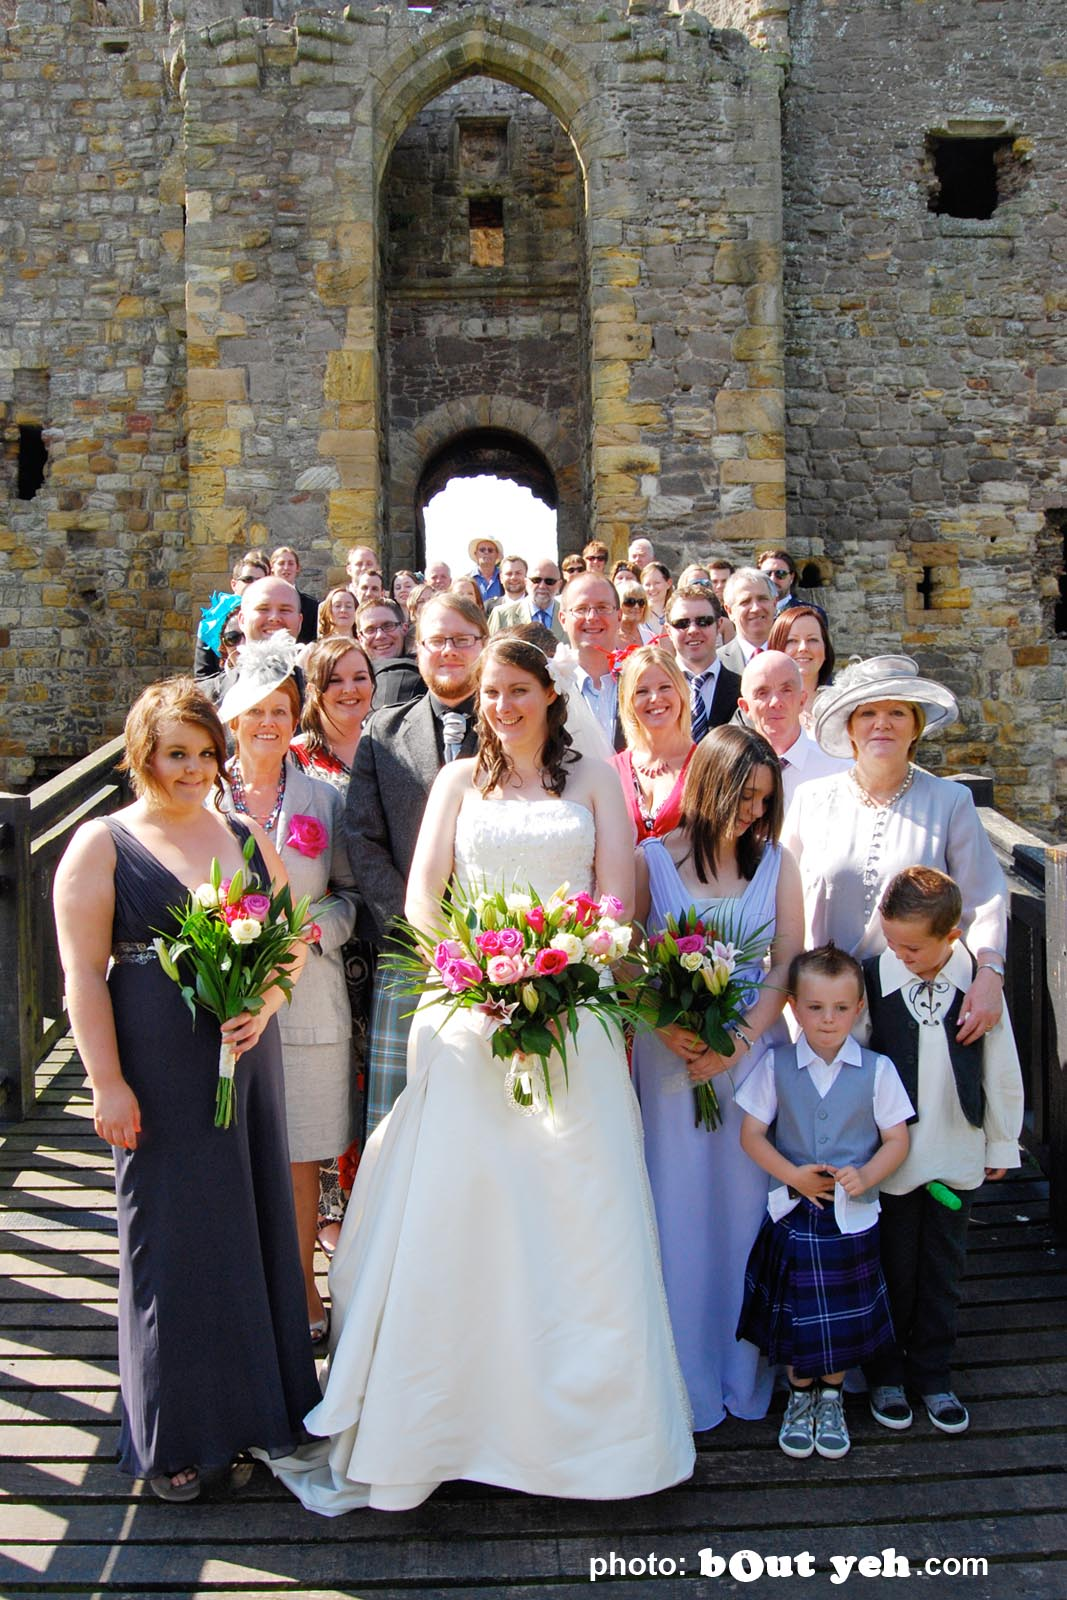 Davy and Niamh's wedding photographed by Bout Yeh wedding photographers and video services Belfast and Northern Ireland. Photo 2123